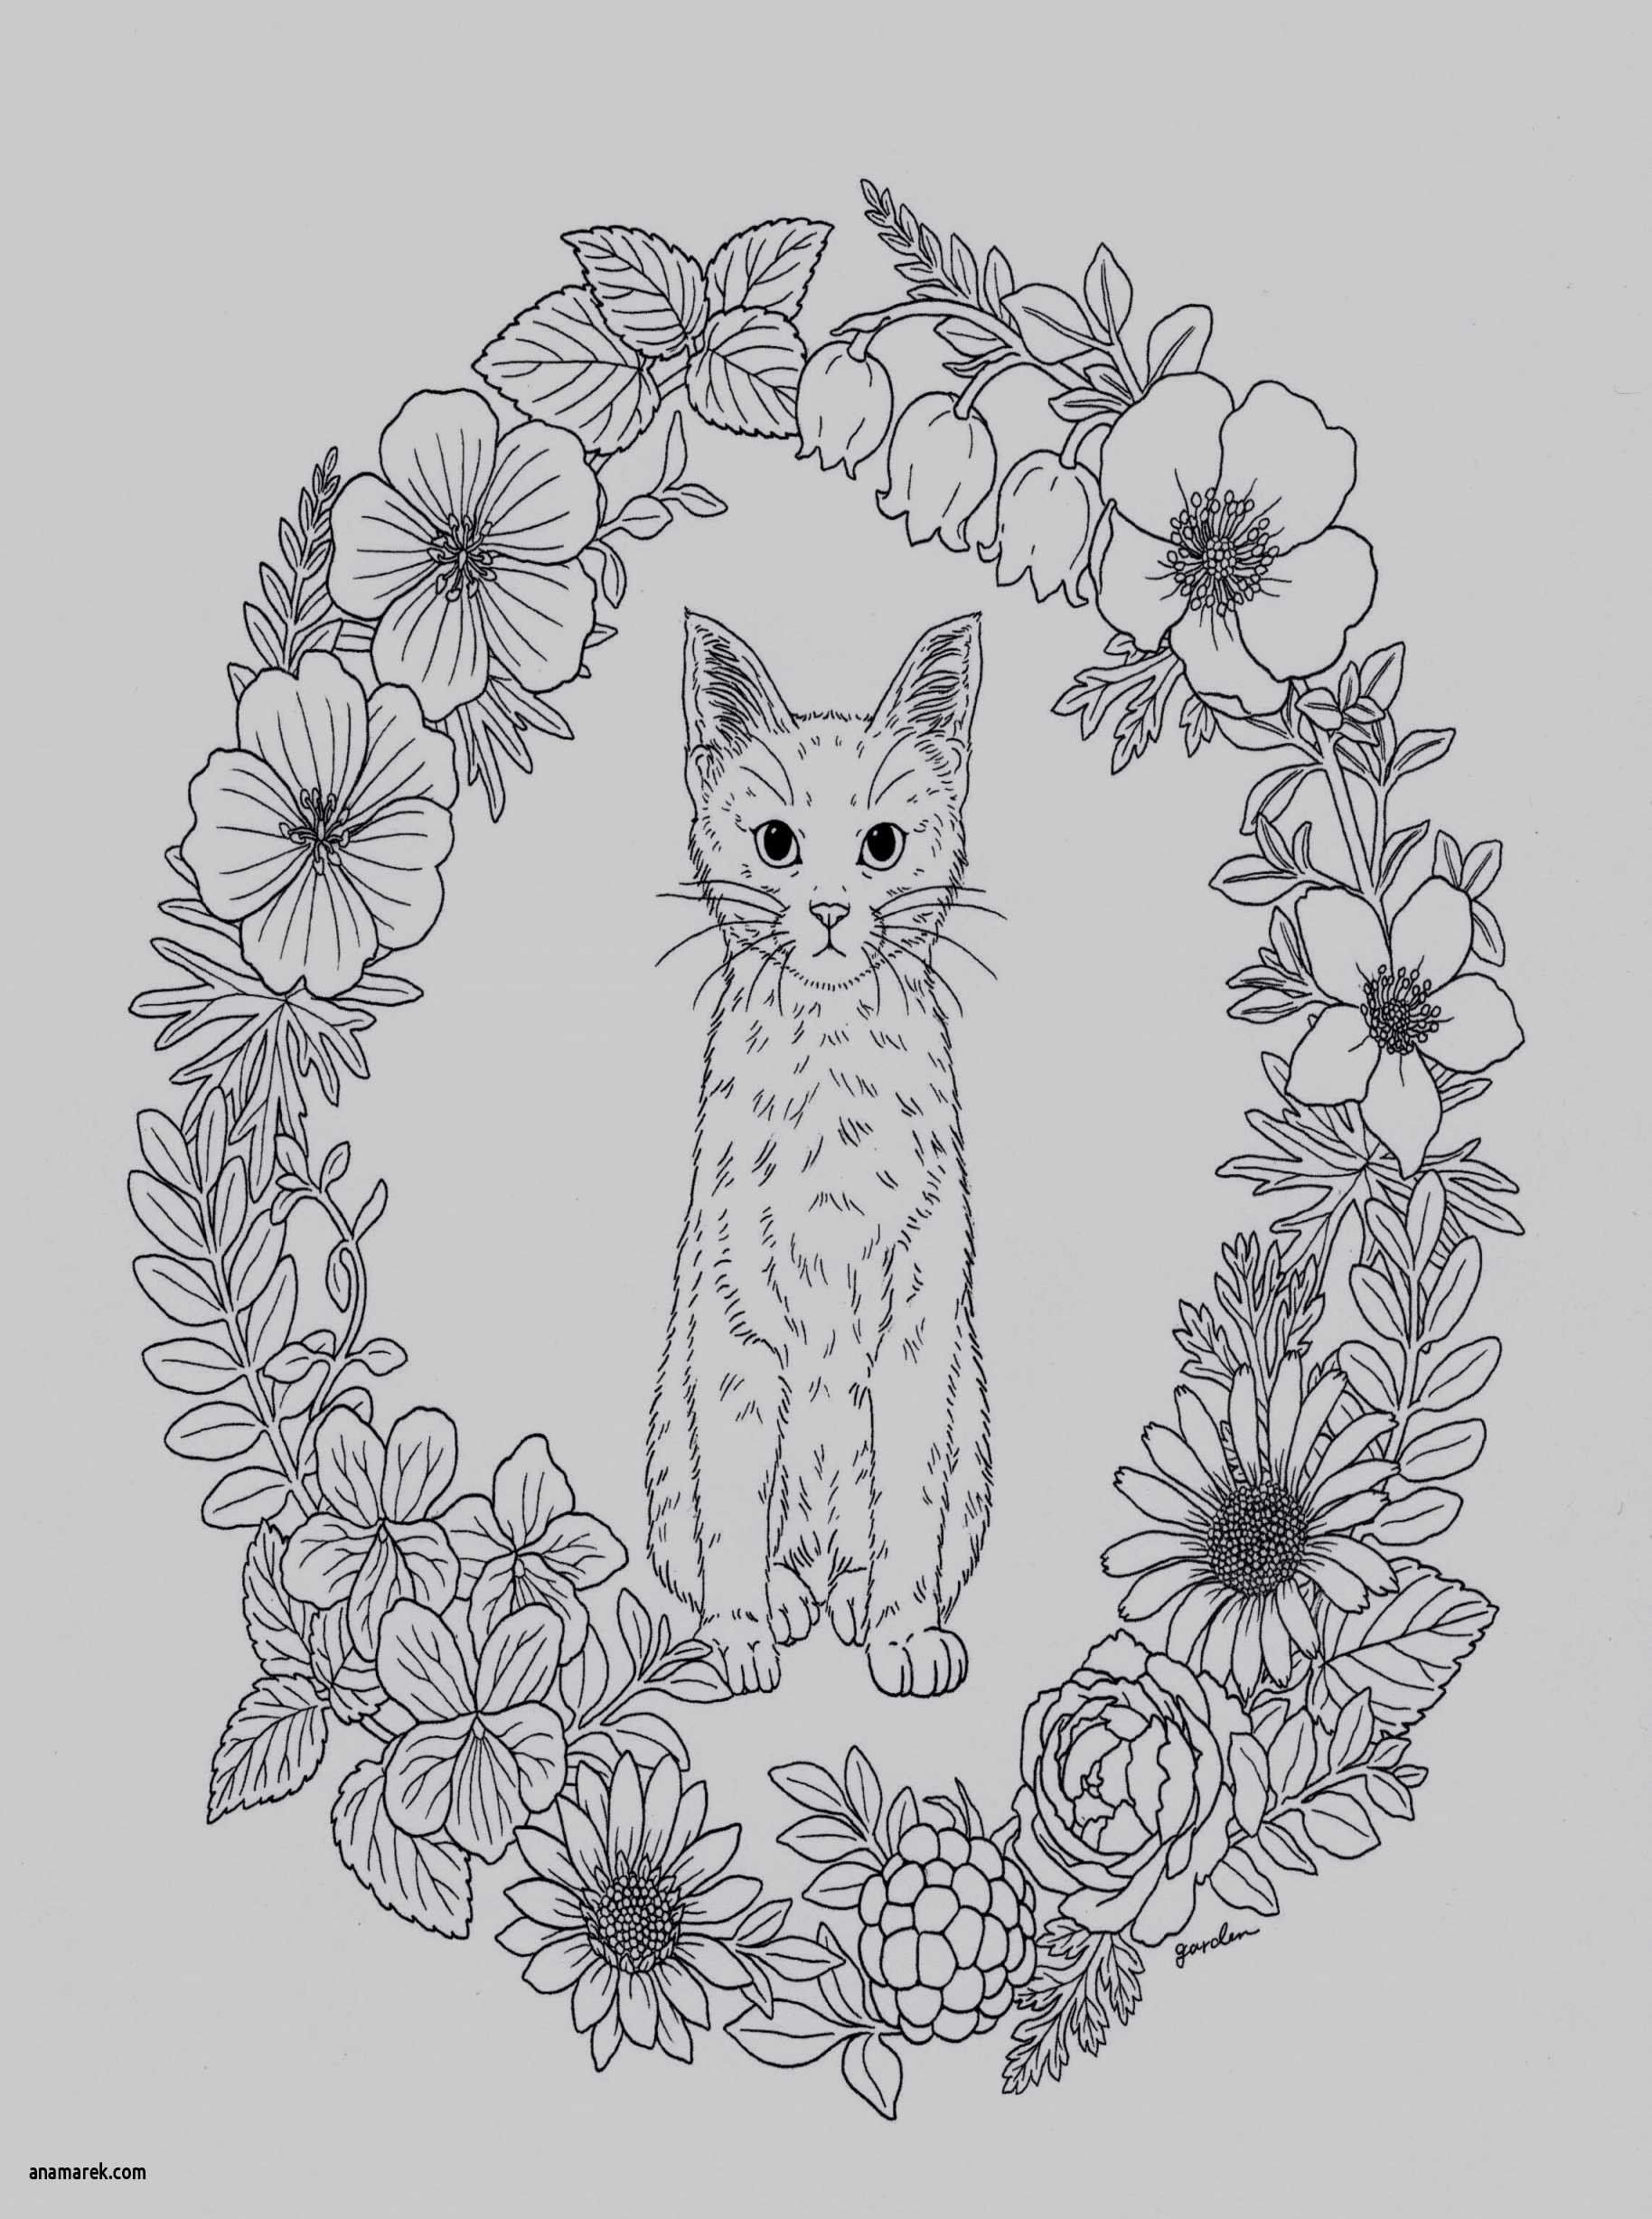 Kitty Cat Coloring Pages Elegant Cute Kitten Coloring Pages Kanta